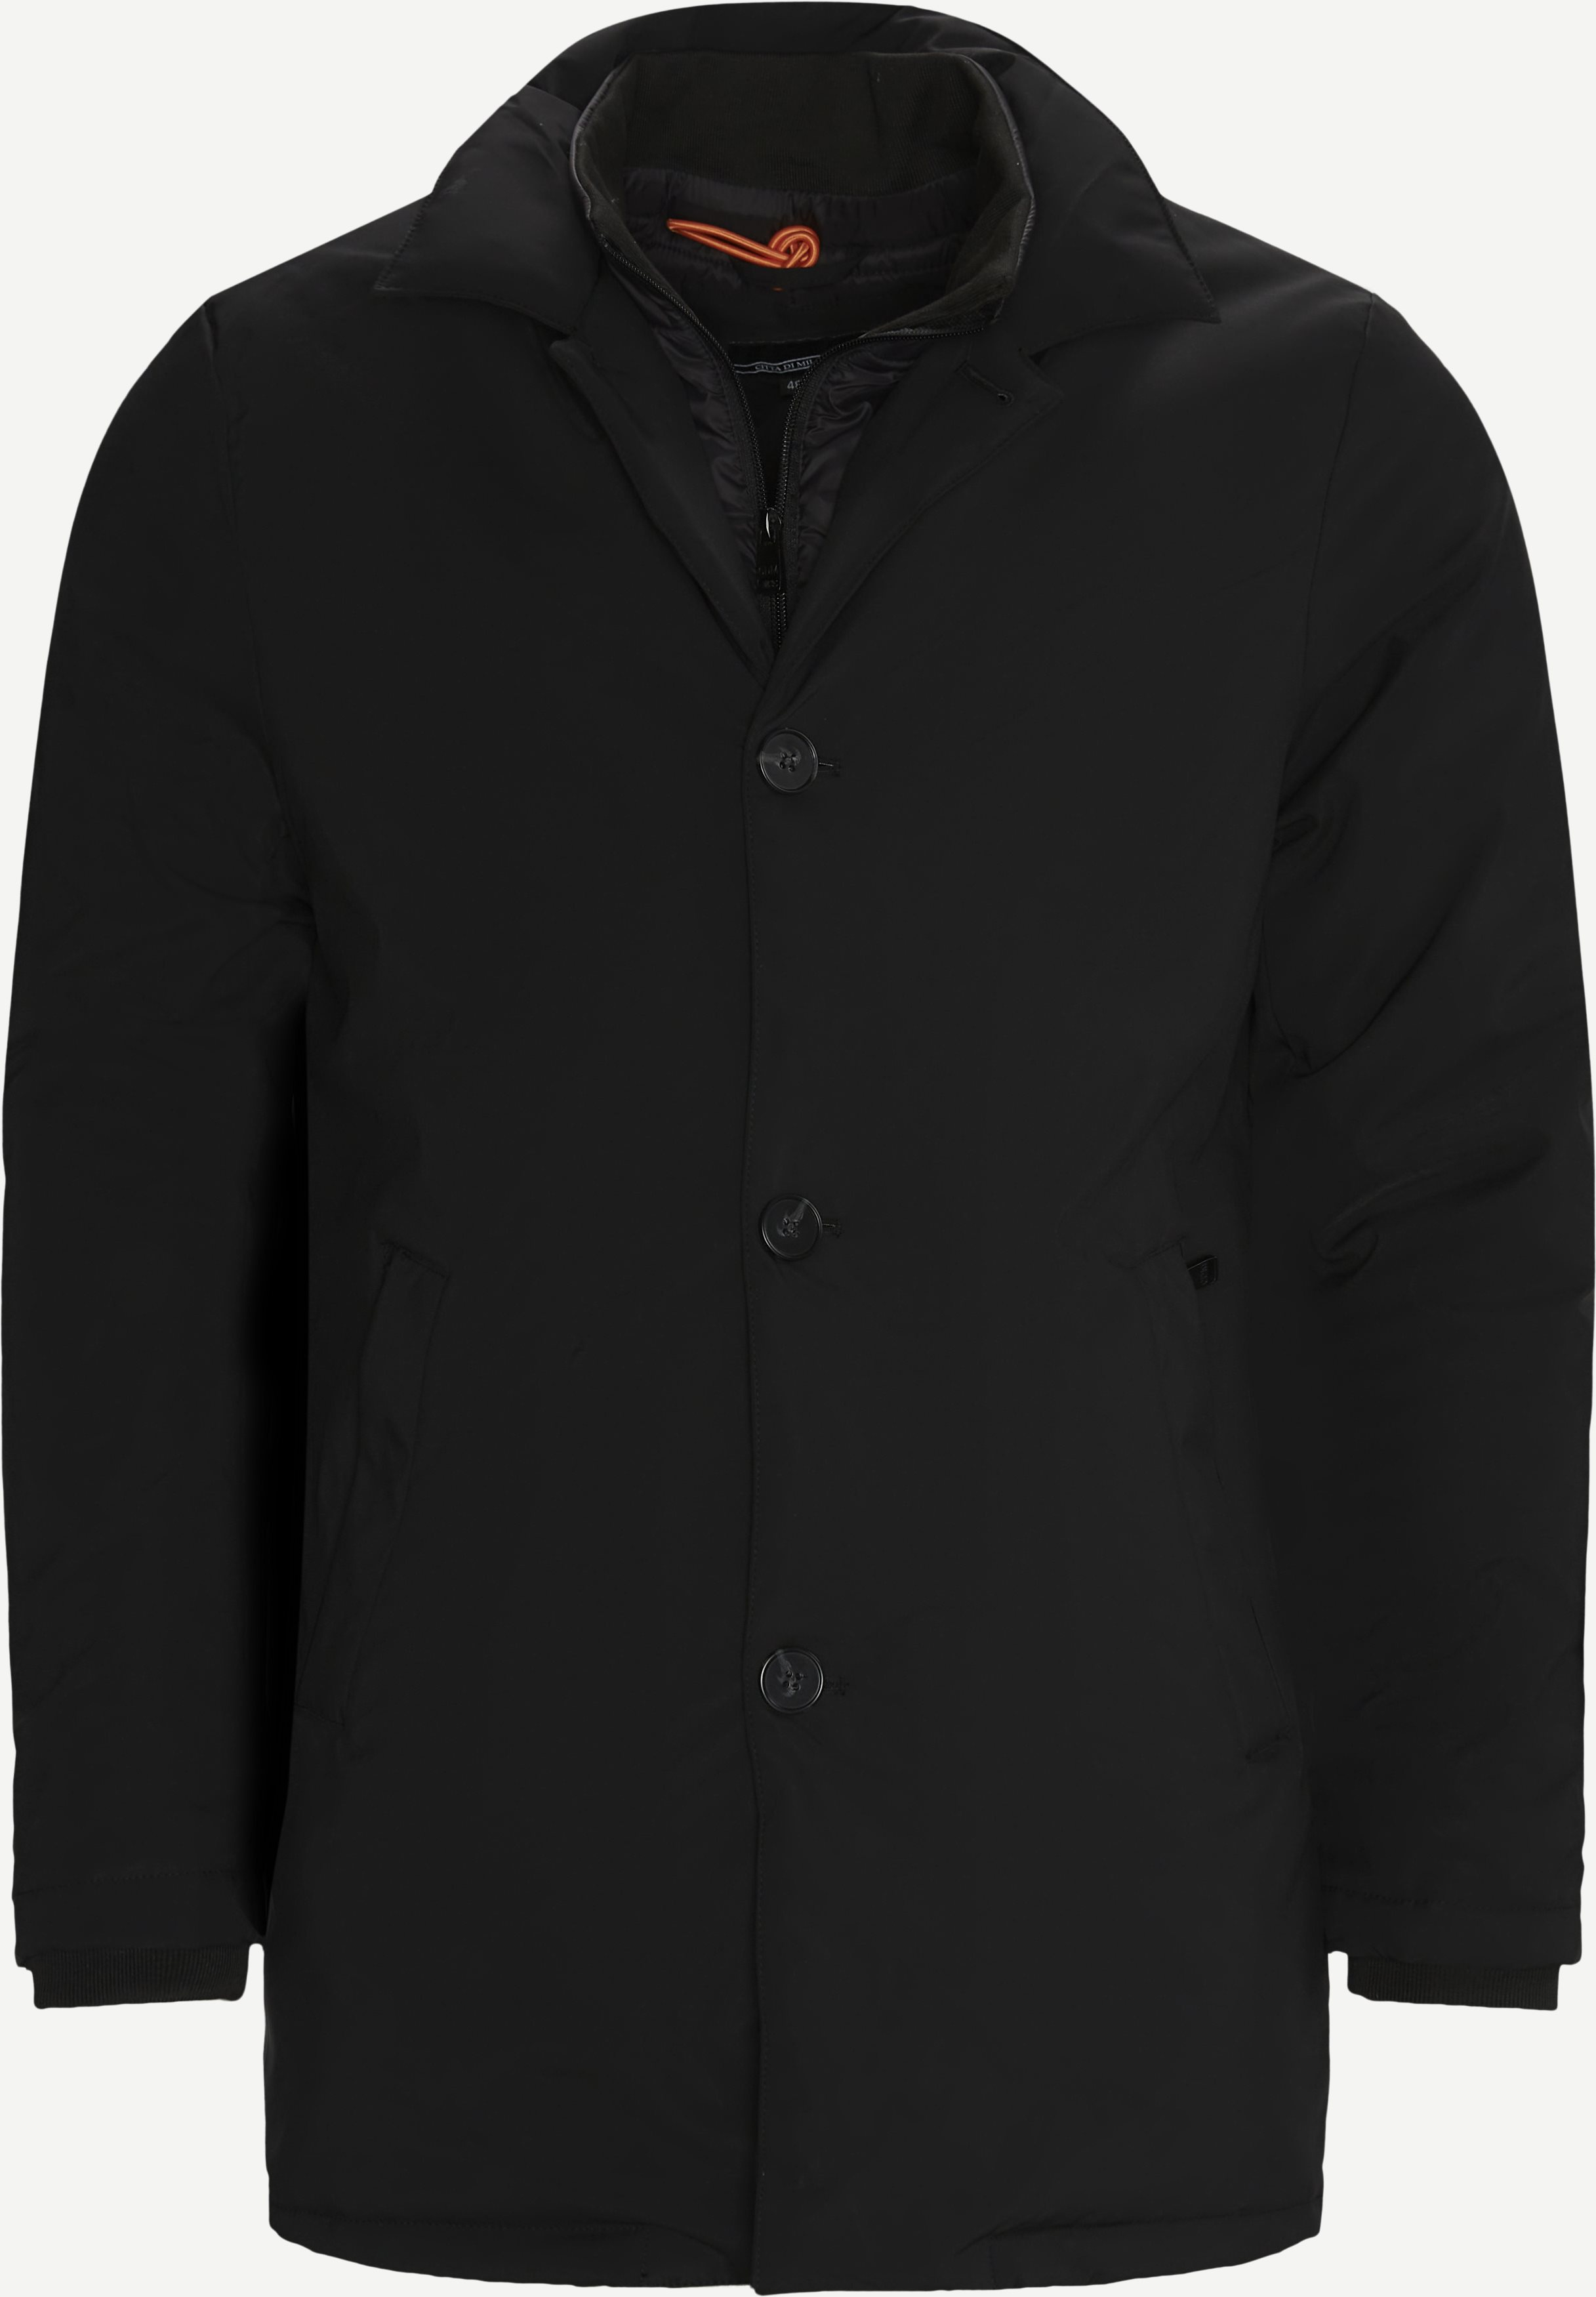 Manning Jacket - Jackets - Regular - Black